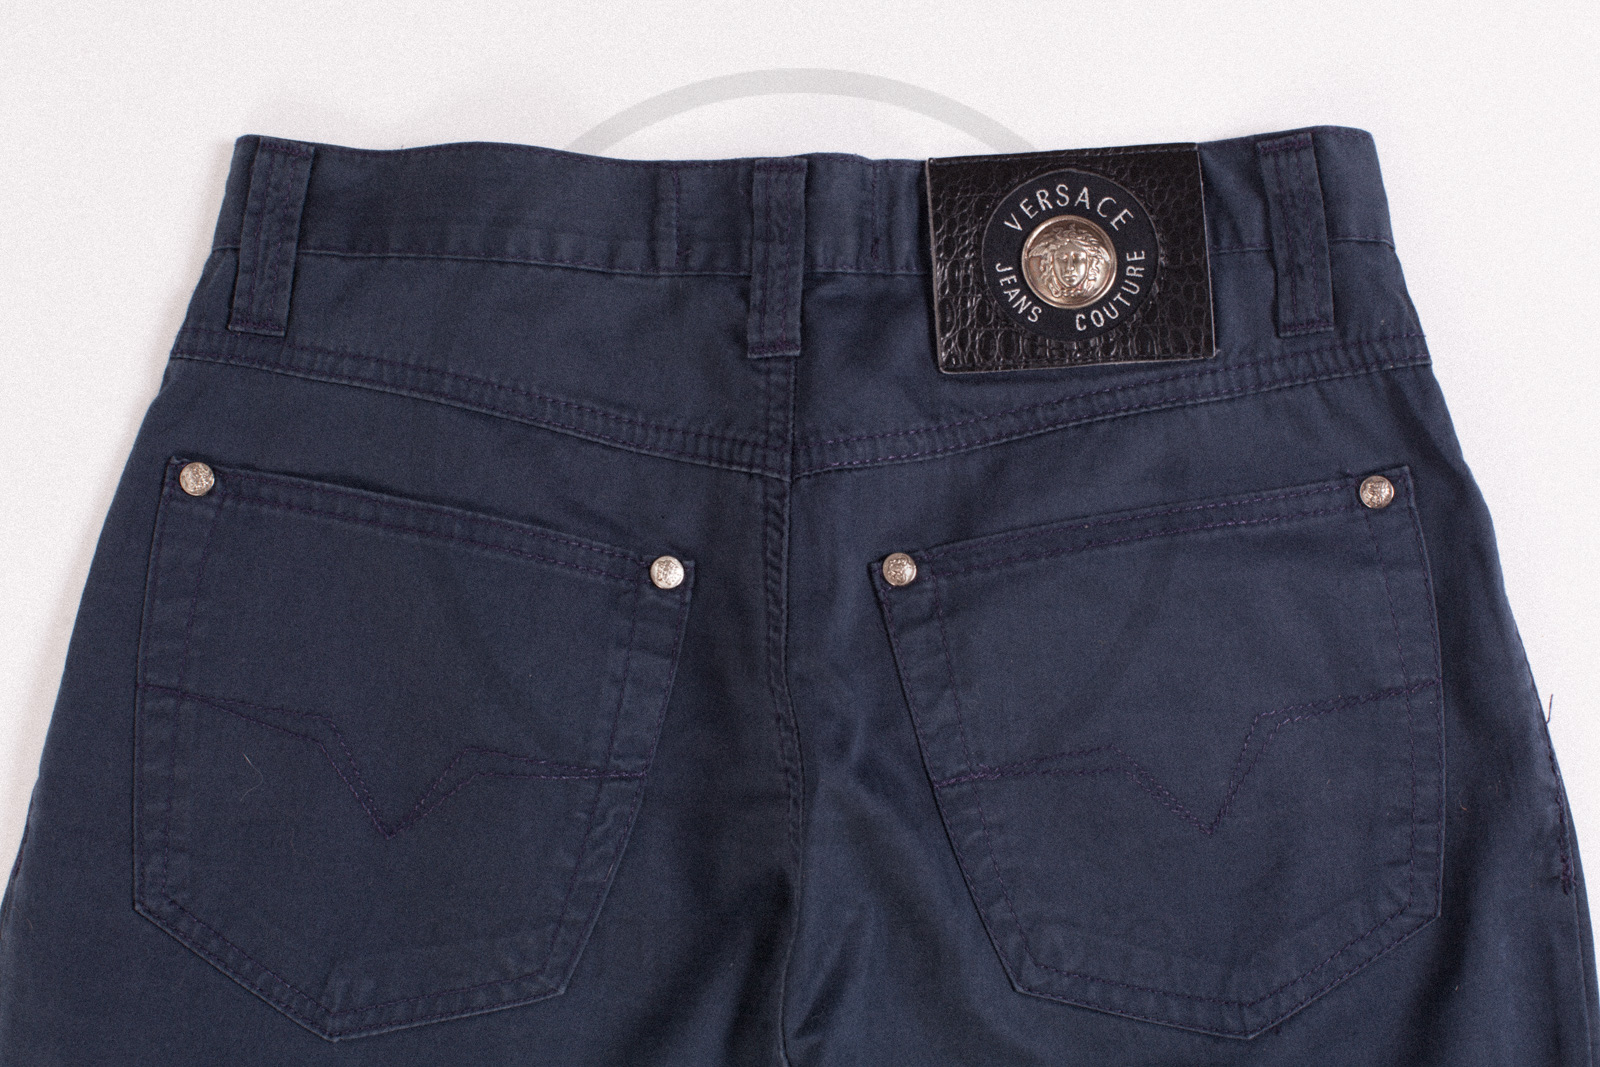 Versace Jeans Couture Jeans Sammy Amp Nino S Store